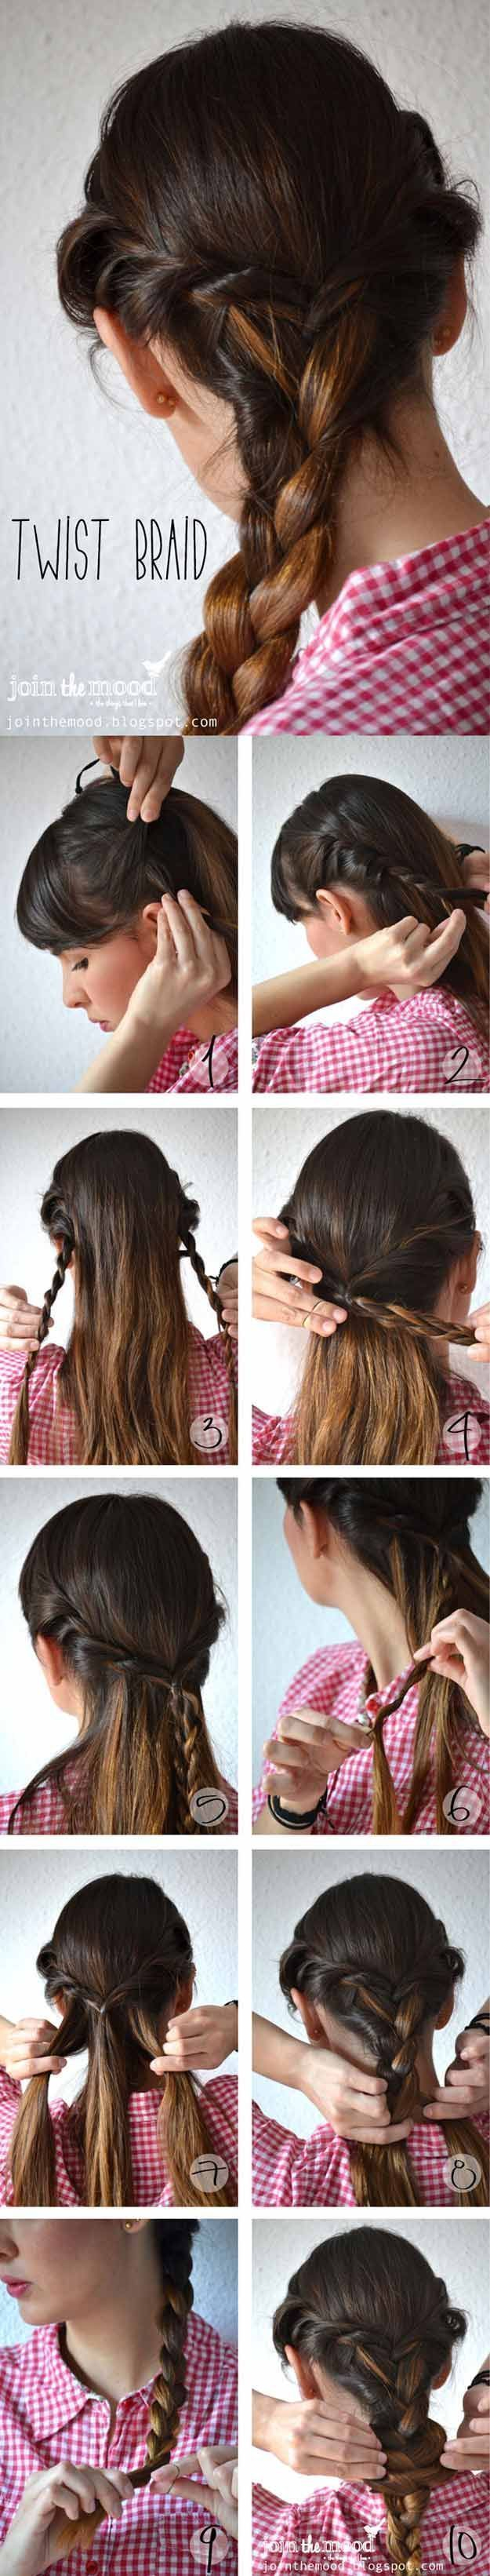 3973 best Easy hairstyles images on Pinterest